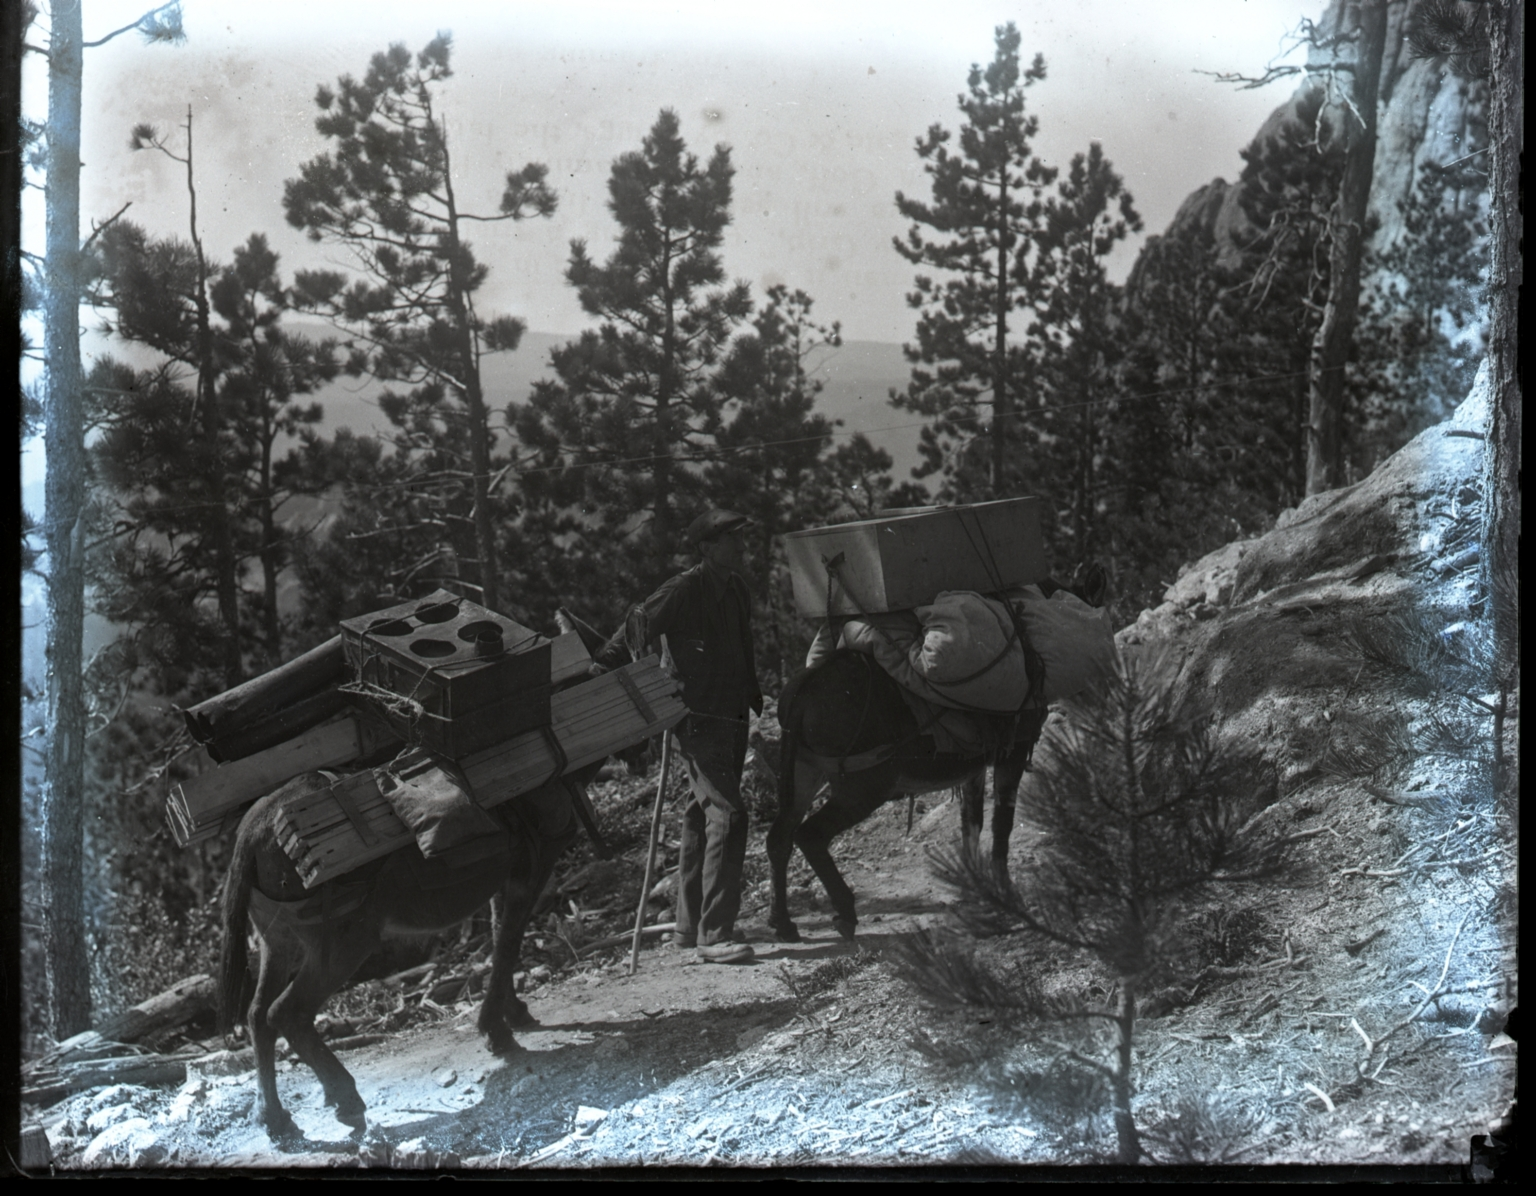 Pack horses carrying lumber and supplies uphill